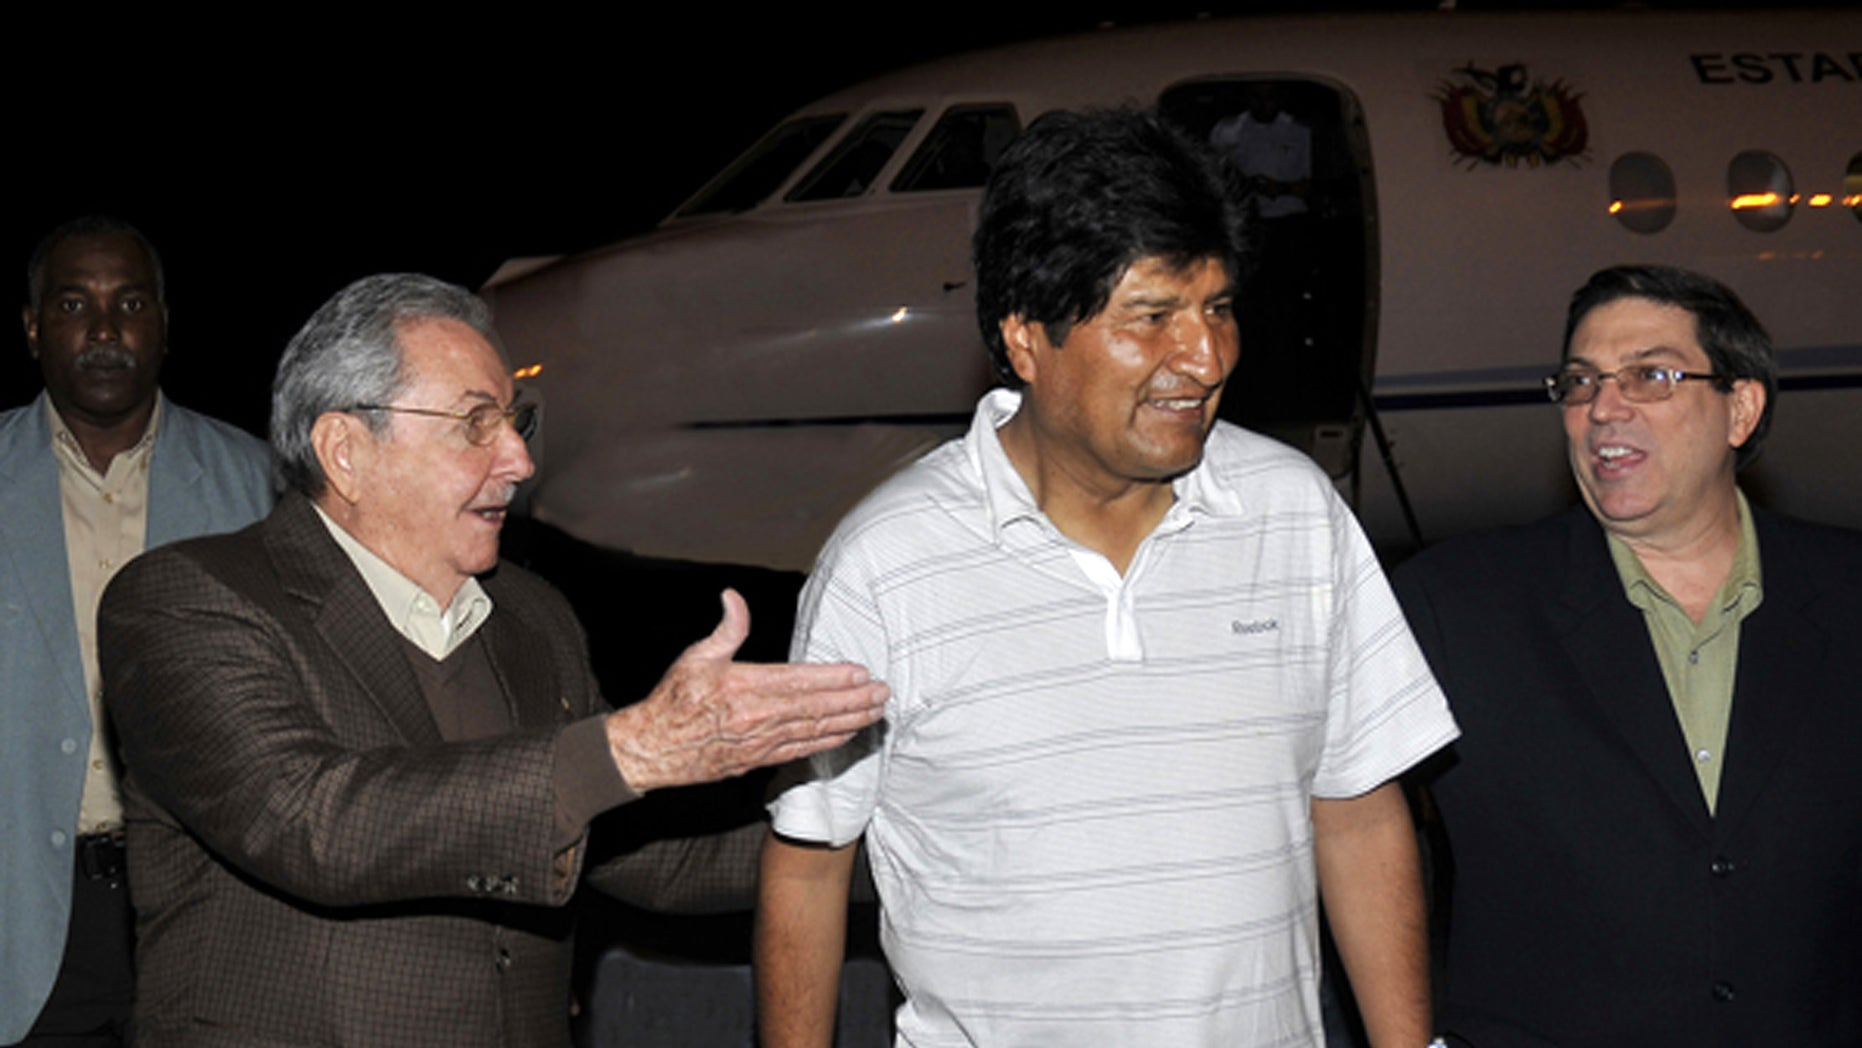 In this picture released by the Cuban newspaper Juventud Revelde, Bolivia's President Evo Morales, center, is welcomed by Cuba's President Raul Castro, left, and Cuba's Foreign Minister Bruno Rodriguez at the Jose Marti international airport  in Havana, Cuba, early Sunday, Dec. 23, 2012. Evo Morales is in Cuba to visit Venezuela's President Hugo Chavez, who is recovering from a surgery, his fourth operation related to his pelvic cancer since June 2011. (AP Photo/Juventud Revelde, Estudios Revolucion)